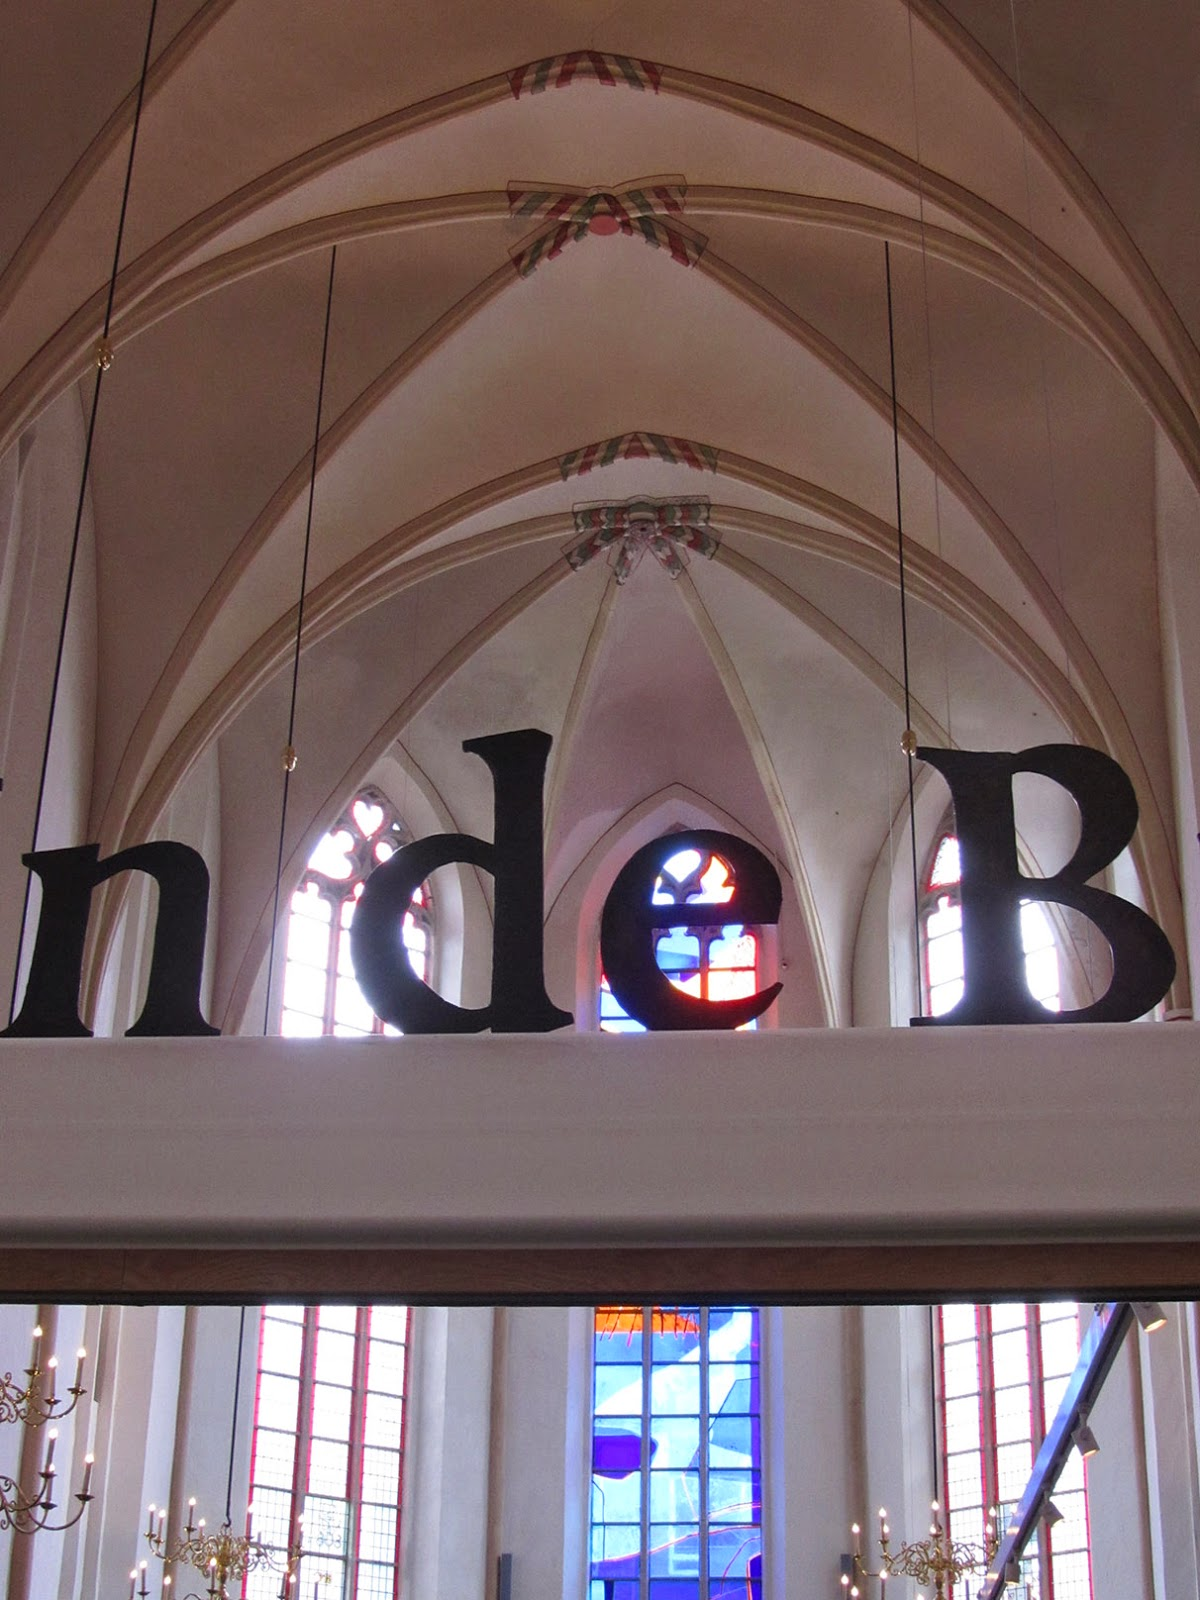 glass stained windows of Waanders in de Broeren